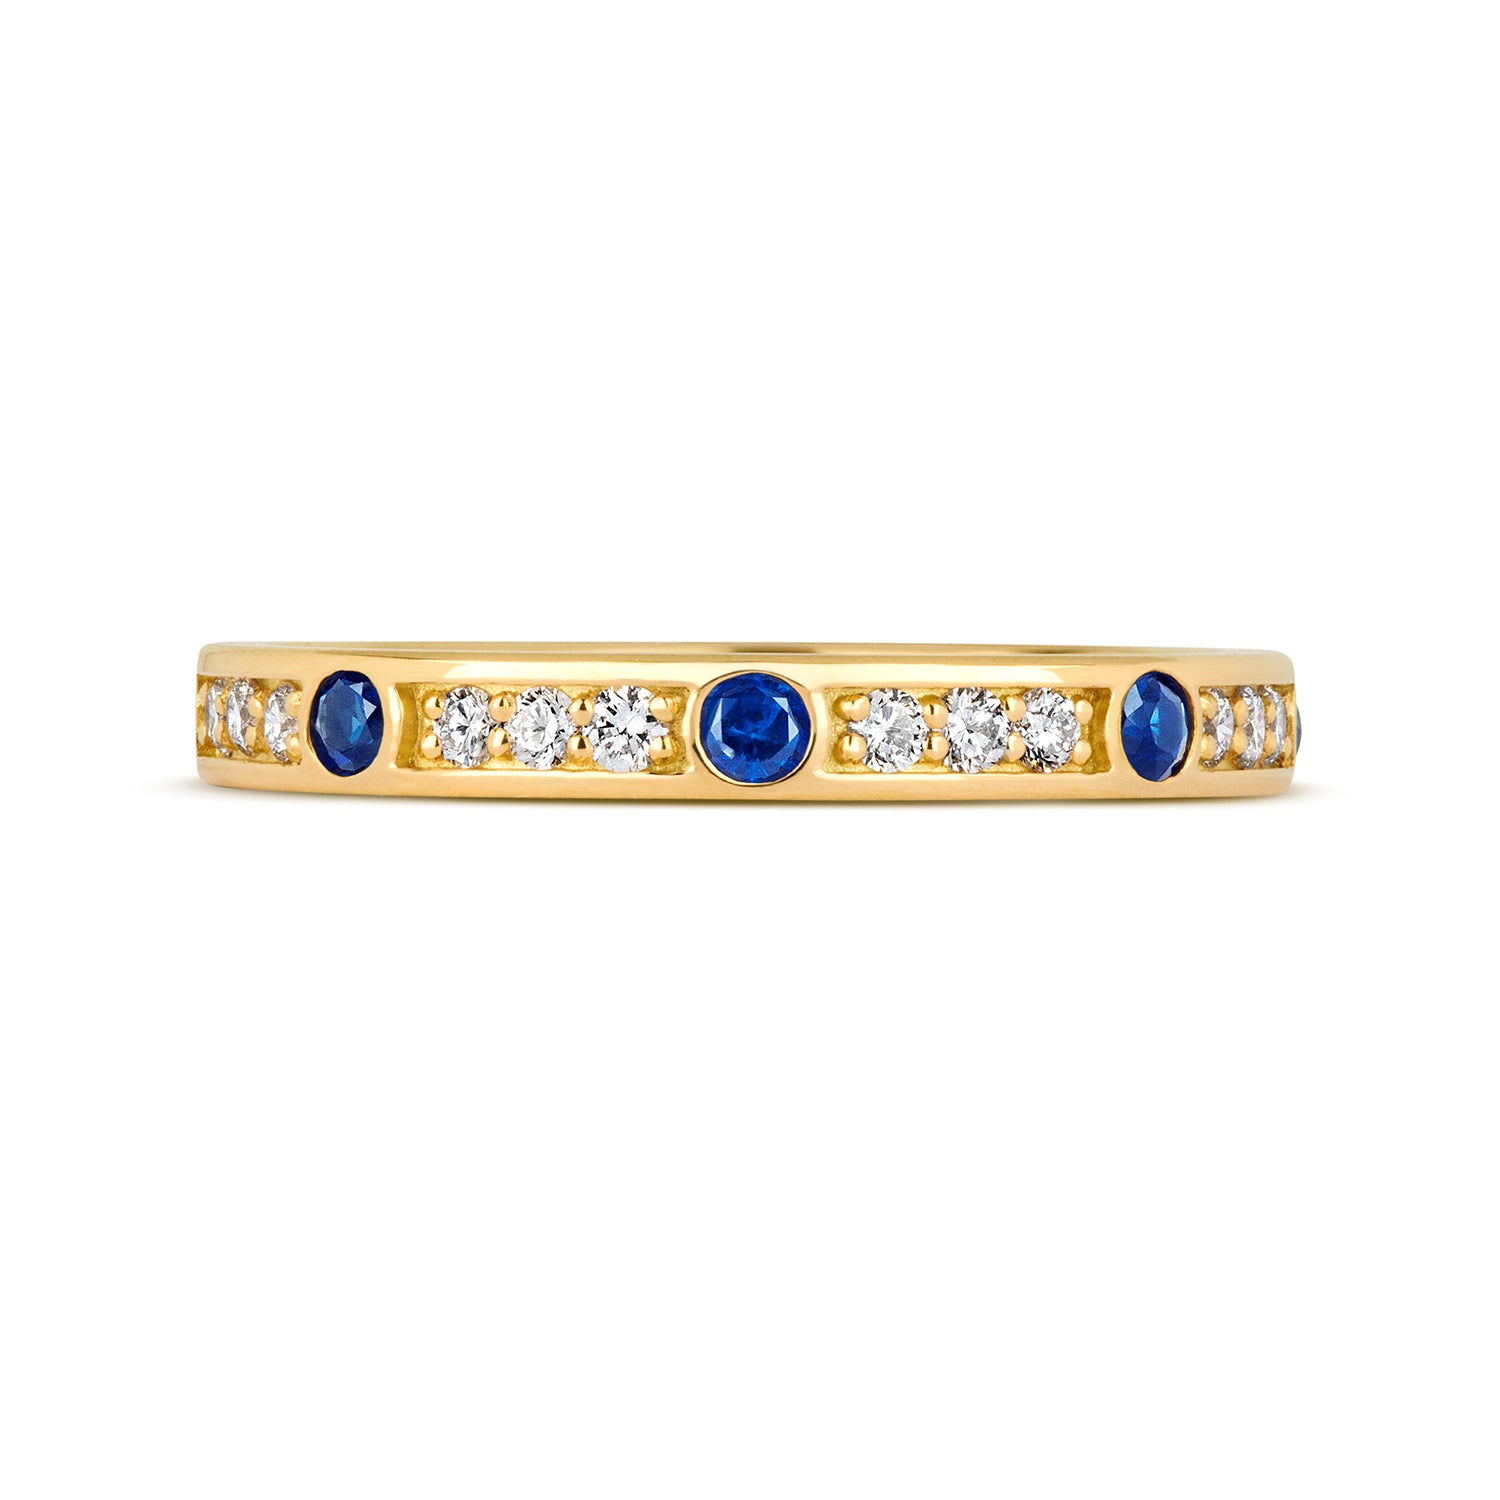 CORINA Sapphire and Diamond Eternity/Wedding Ring - (18ct) Yellow, White or Rose Gold